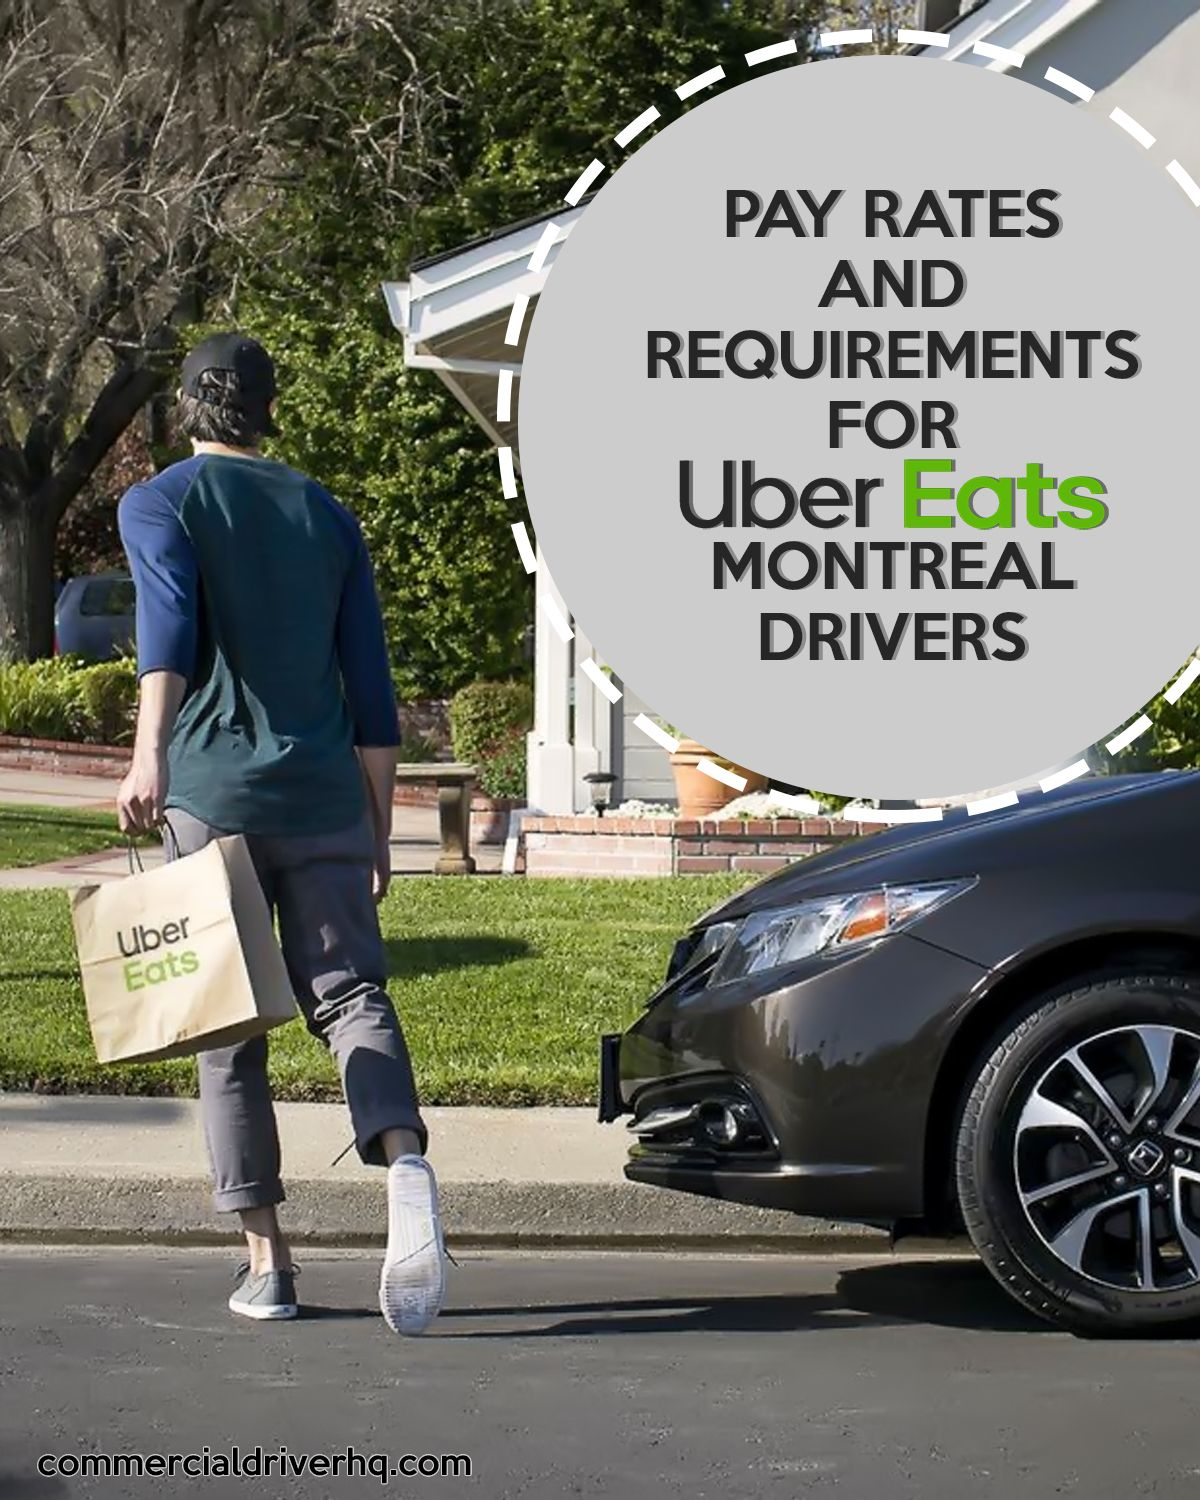 Pay rates and requirements for ubereats montreal drivers